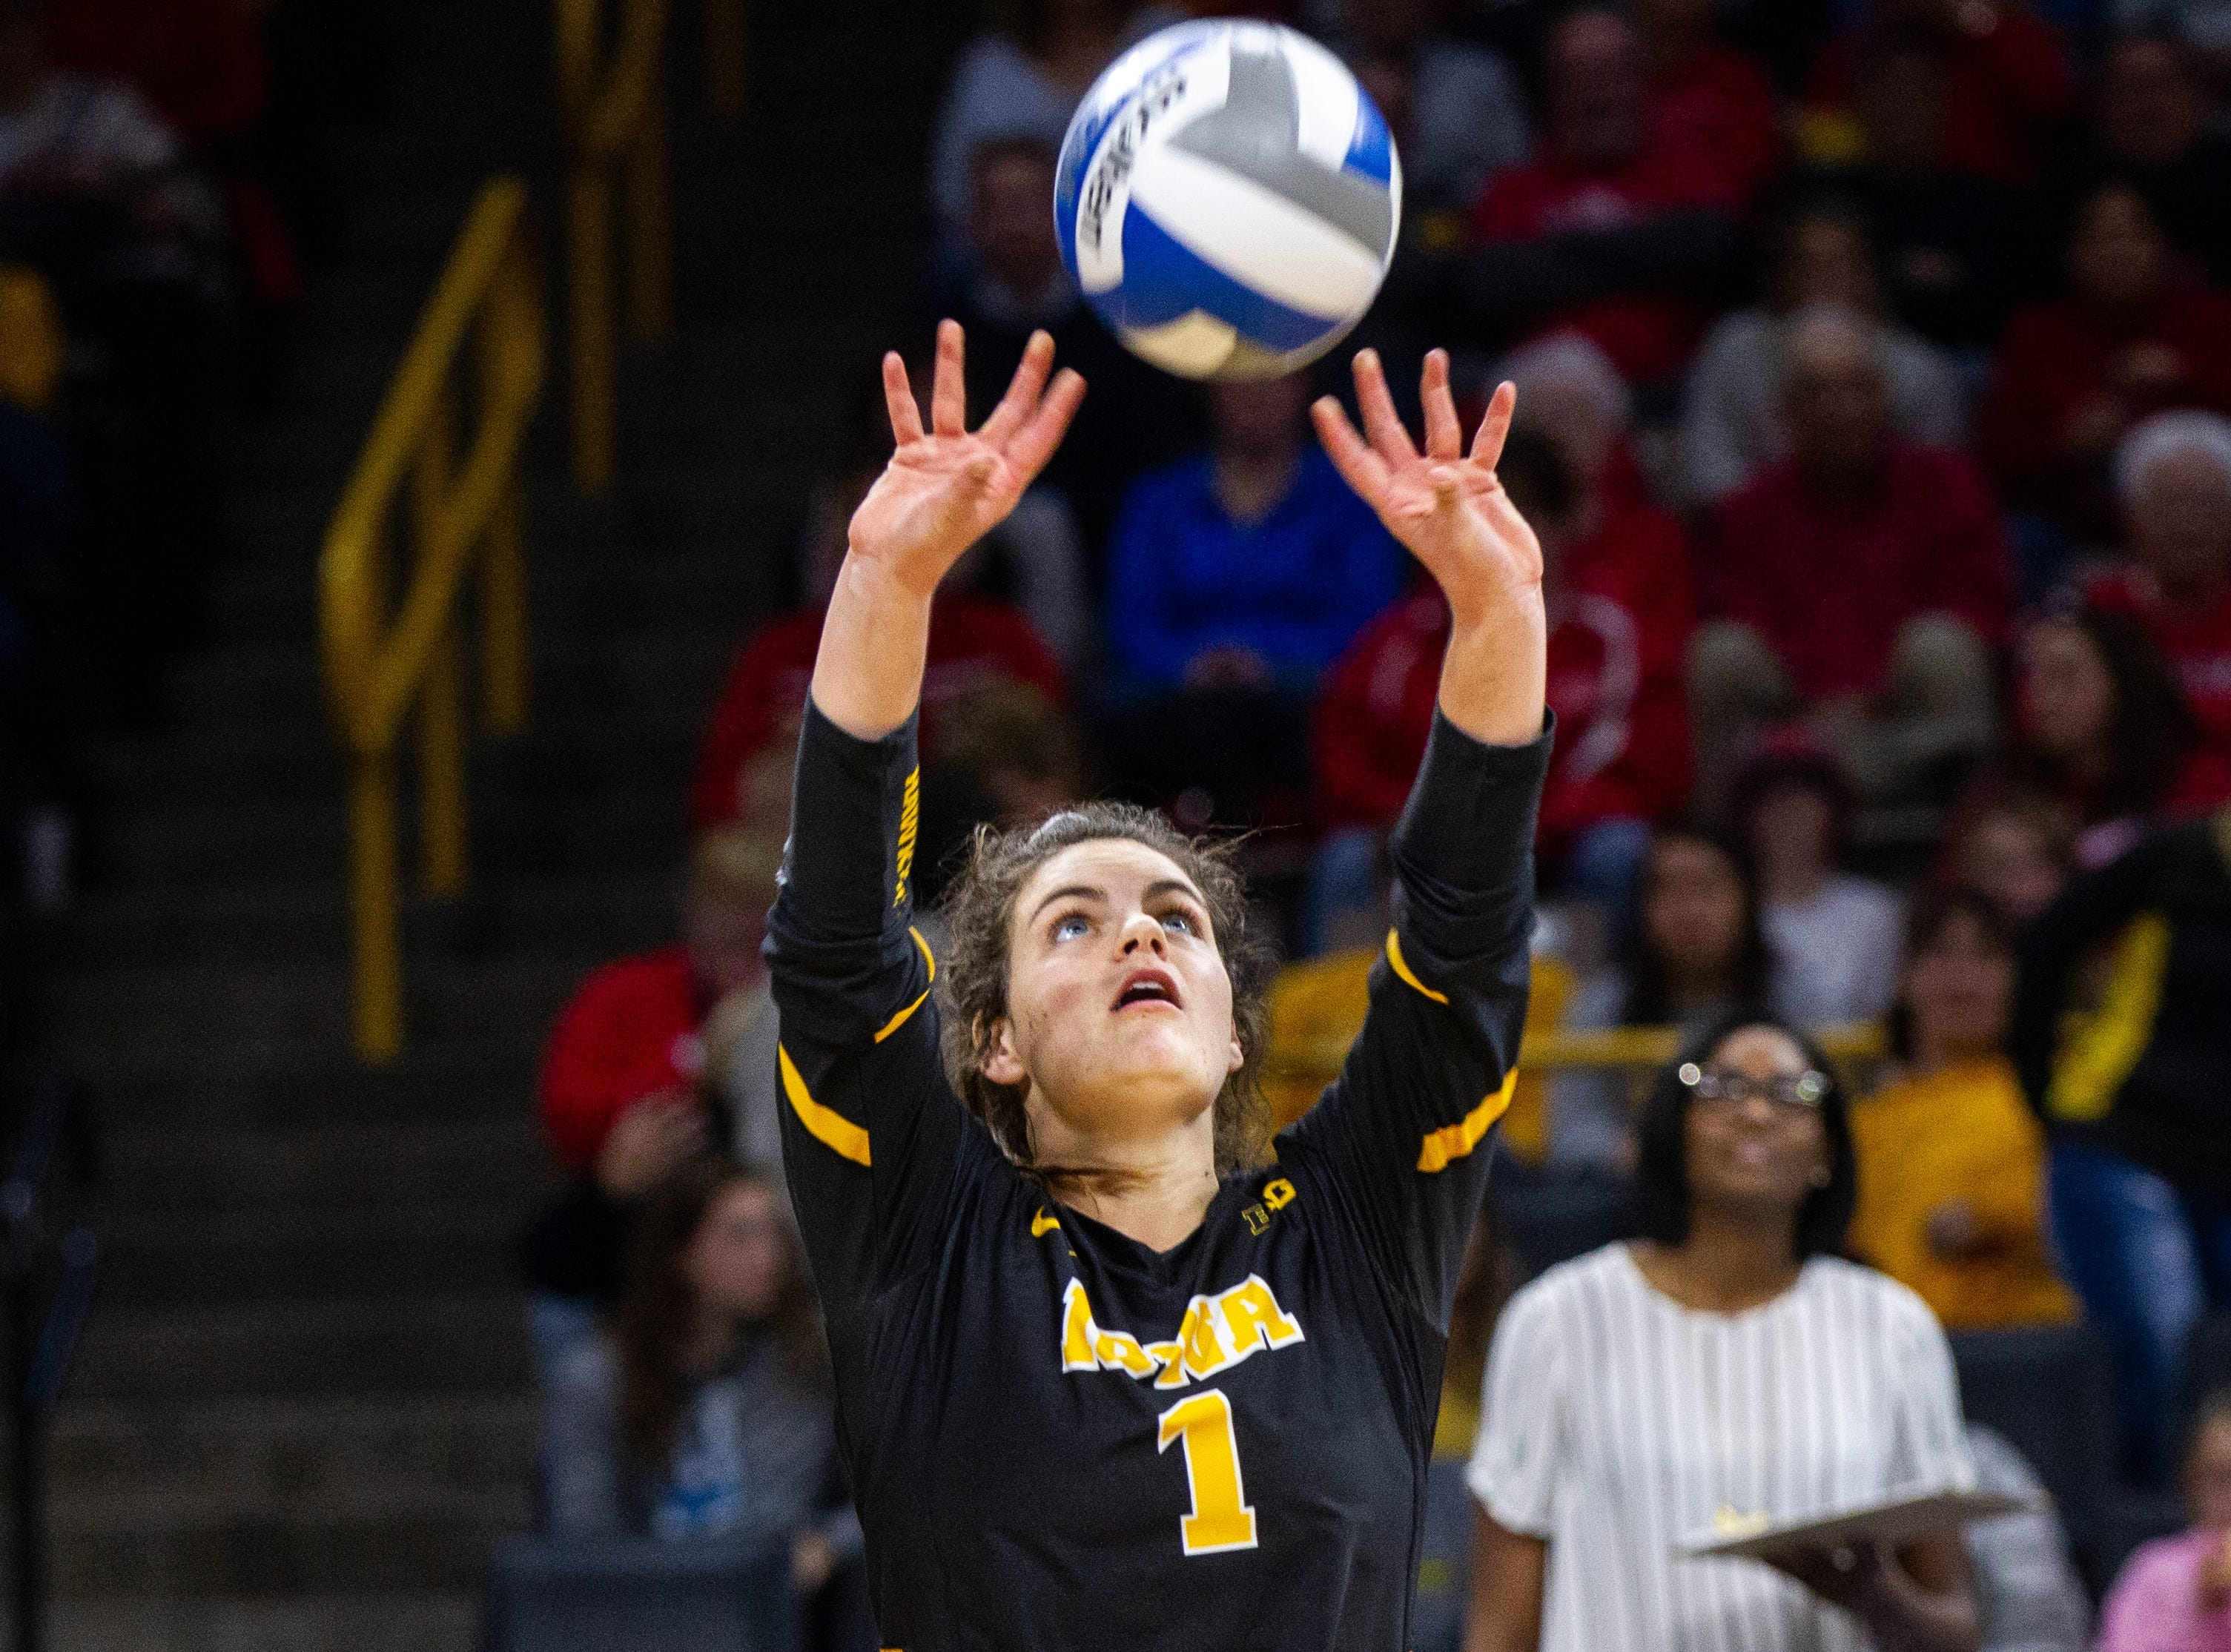 Iowa defensive specialist Molly Kelly (1) sets the ball during an NCAA volleyball game on Wednesday, Nov. 7, 2018, at Carver-Hawkeye Arena in Iowa City.